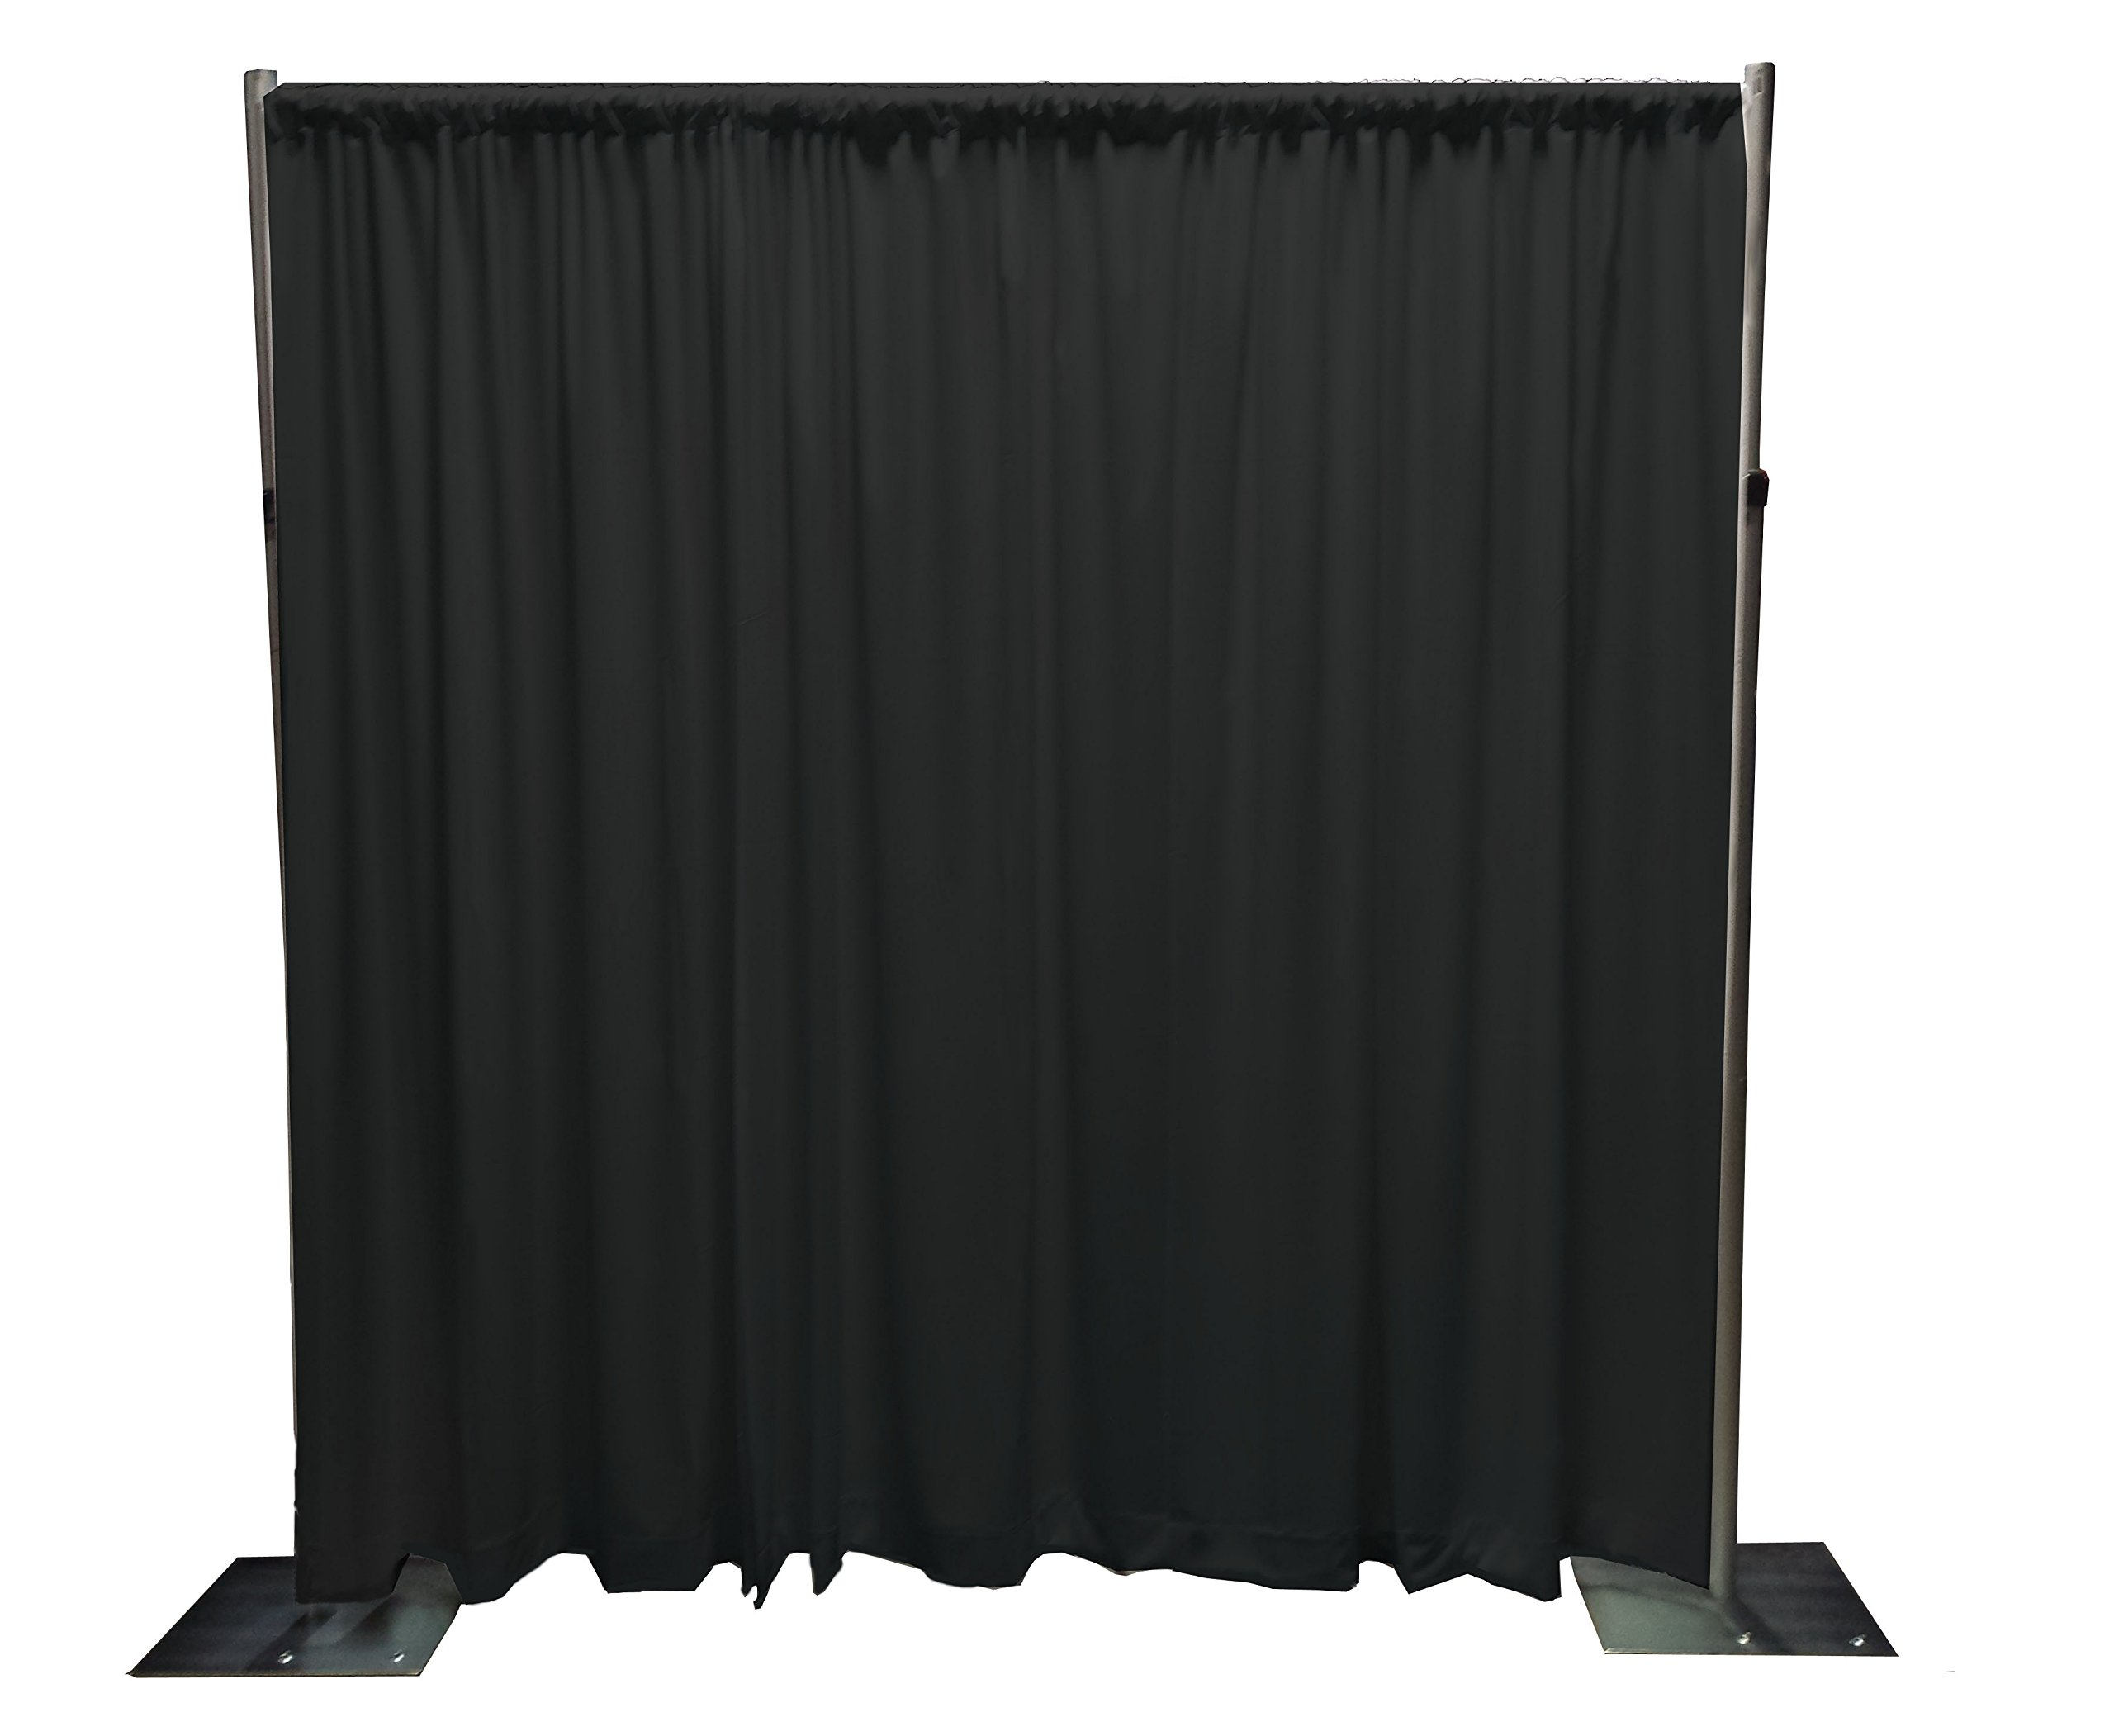 Adjustable Height Backdrop Kit- 7 to 12ft High x 7 to 12ft Wide (Black)